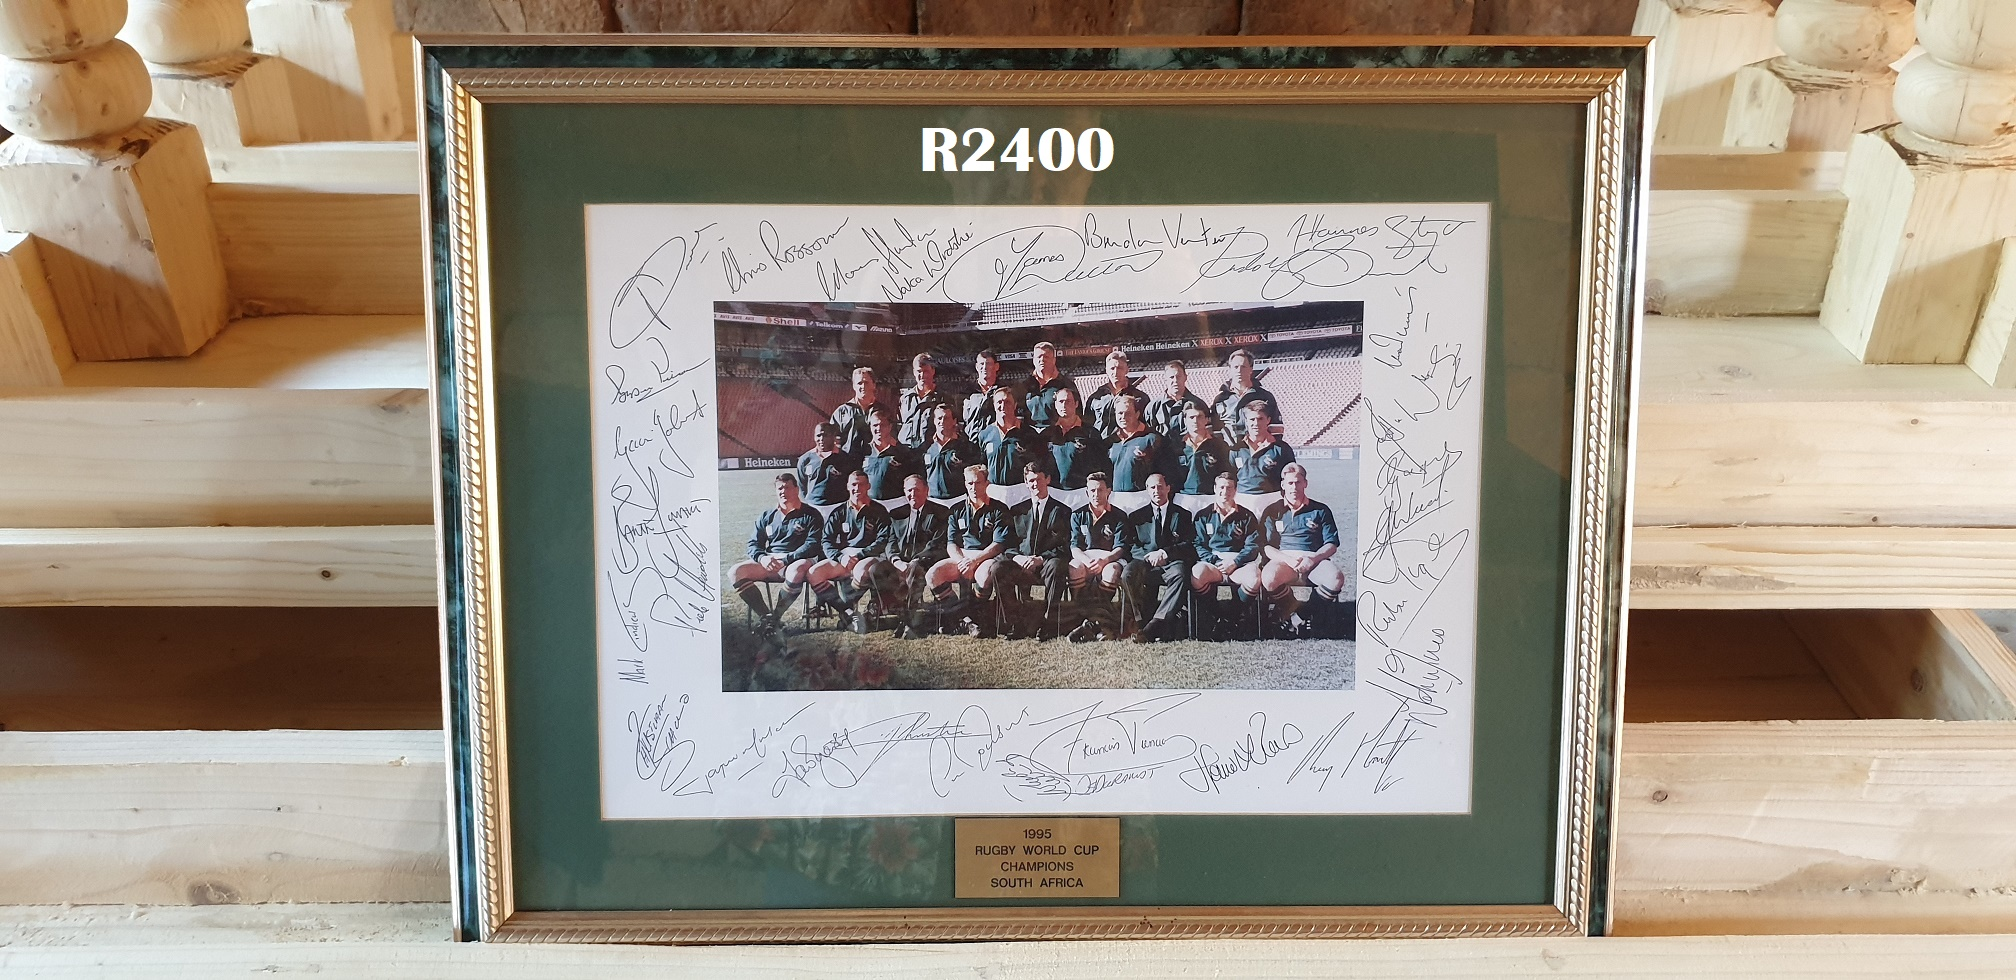 1995 Signed Picture of Rugby World Cup Champions South Africa (560x445)